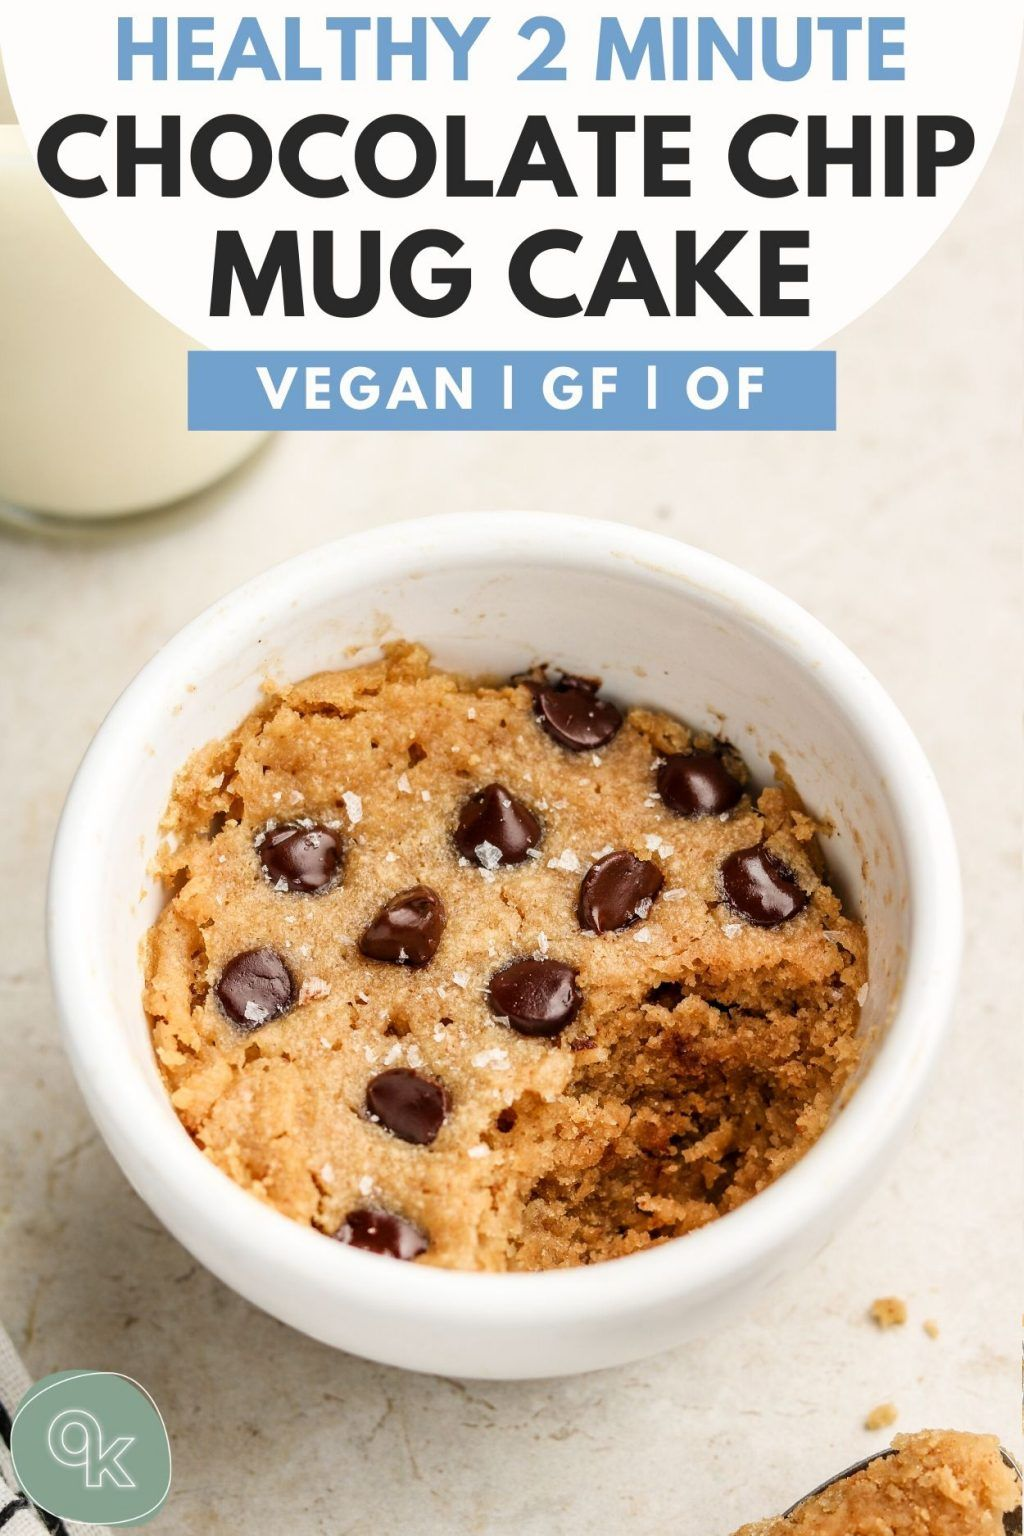 Healthy Chocolate Chip Mug Cake (Vegan + Gluten Free) - Okonomi Kitchen